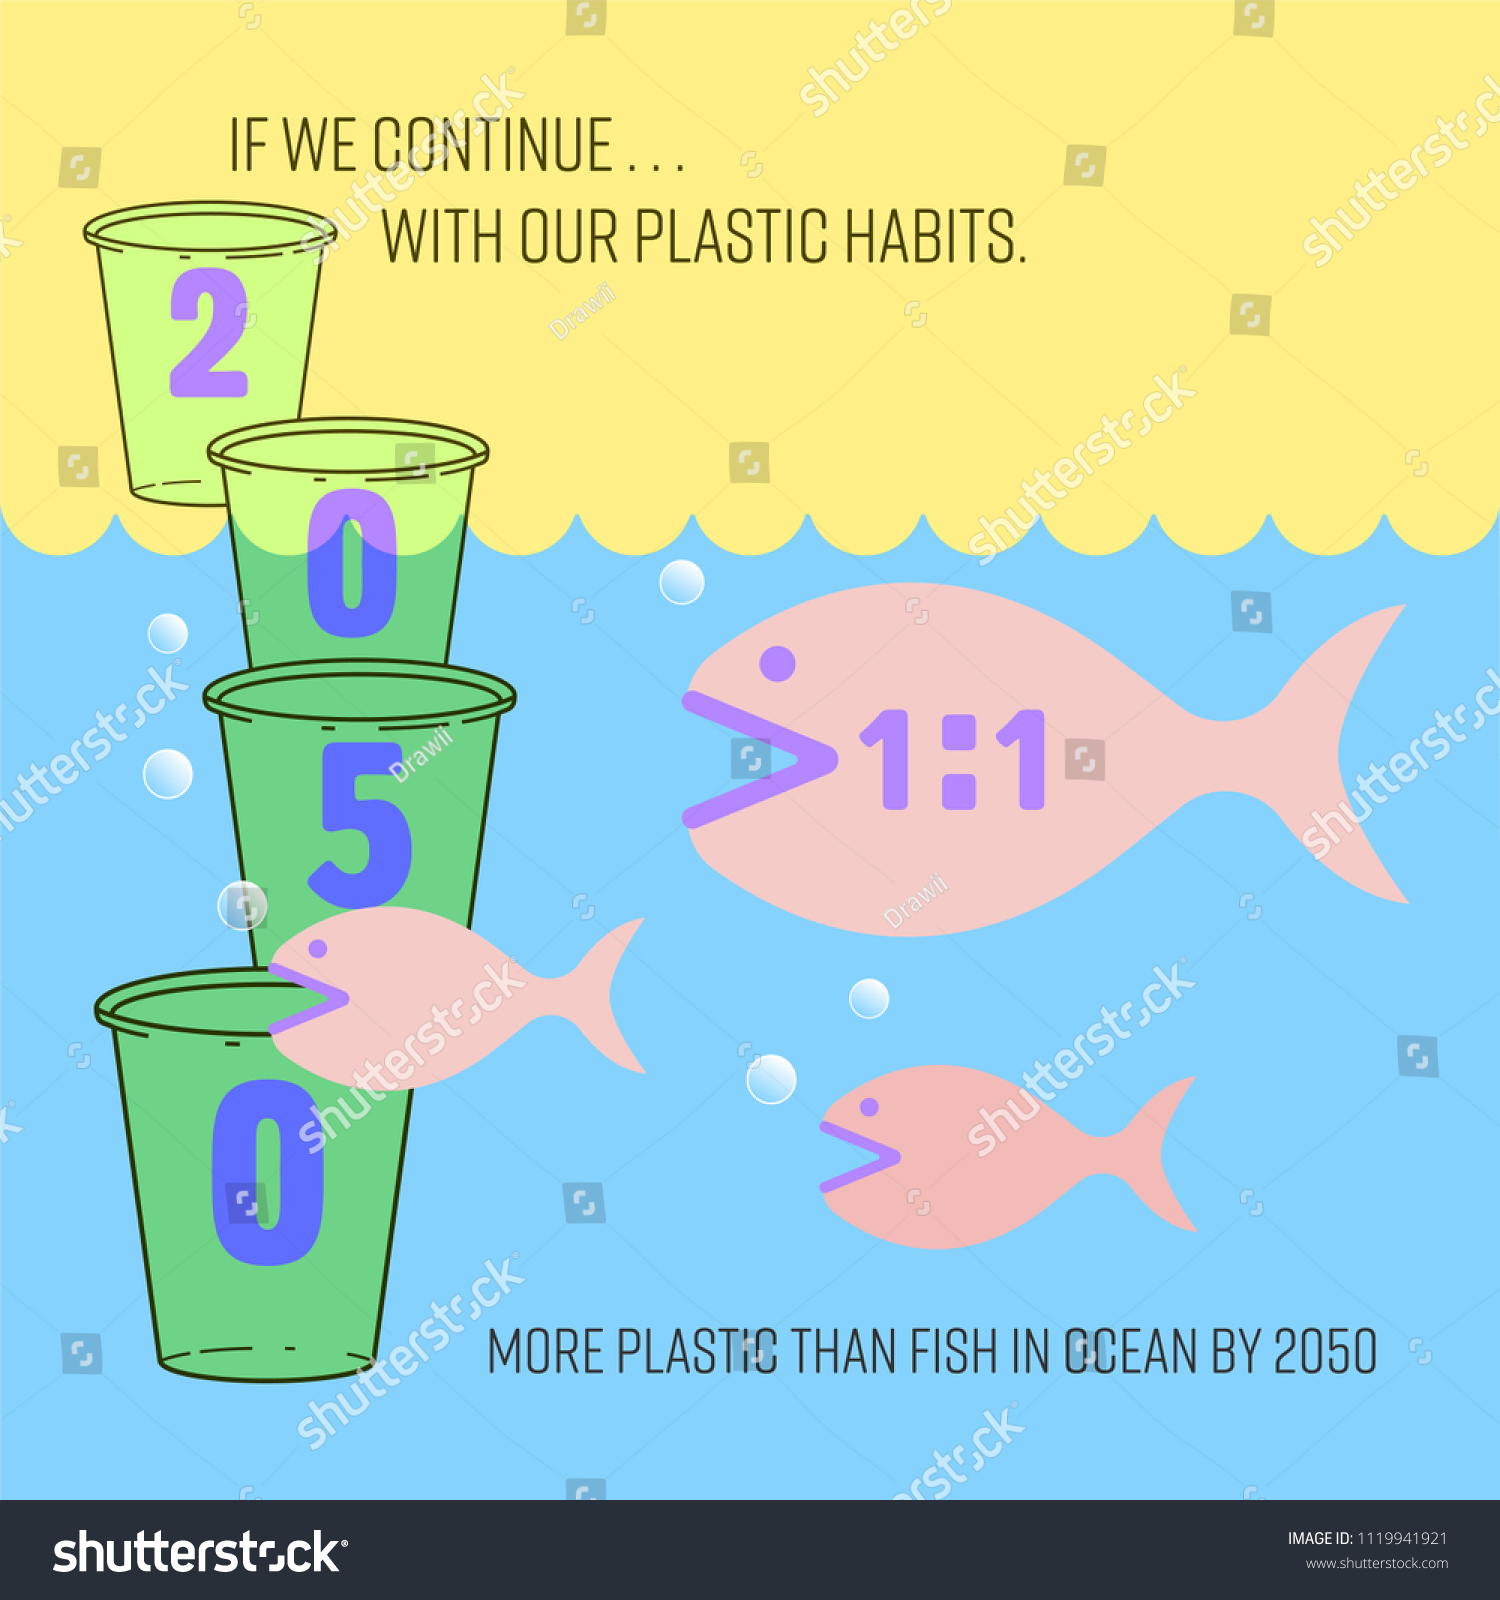 Infographic Ocean Plastic Pollution Situation 2050 Stock Vector